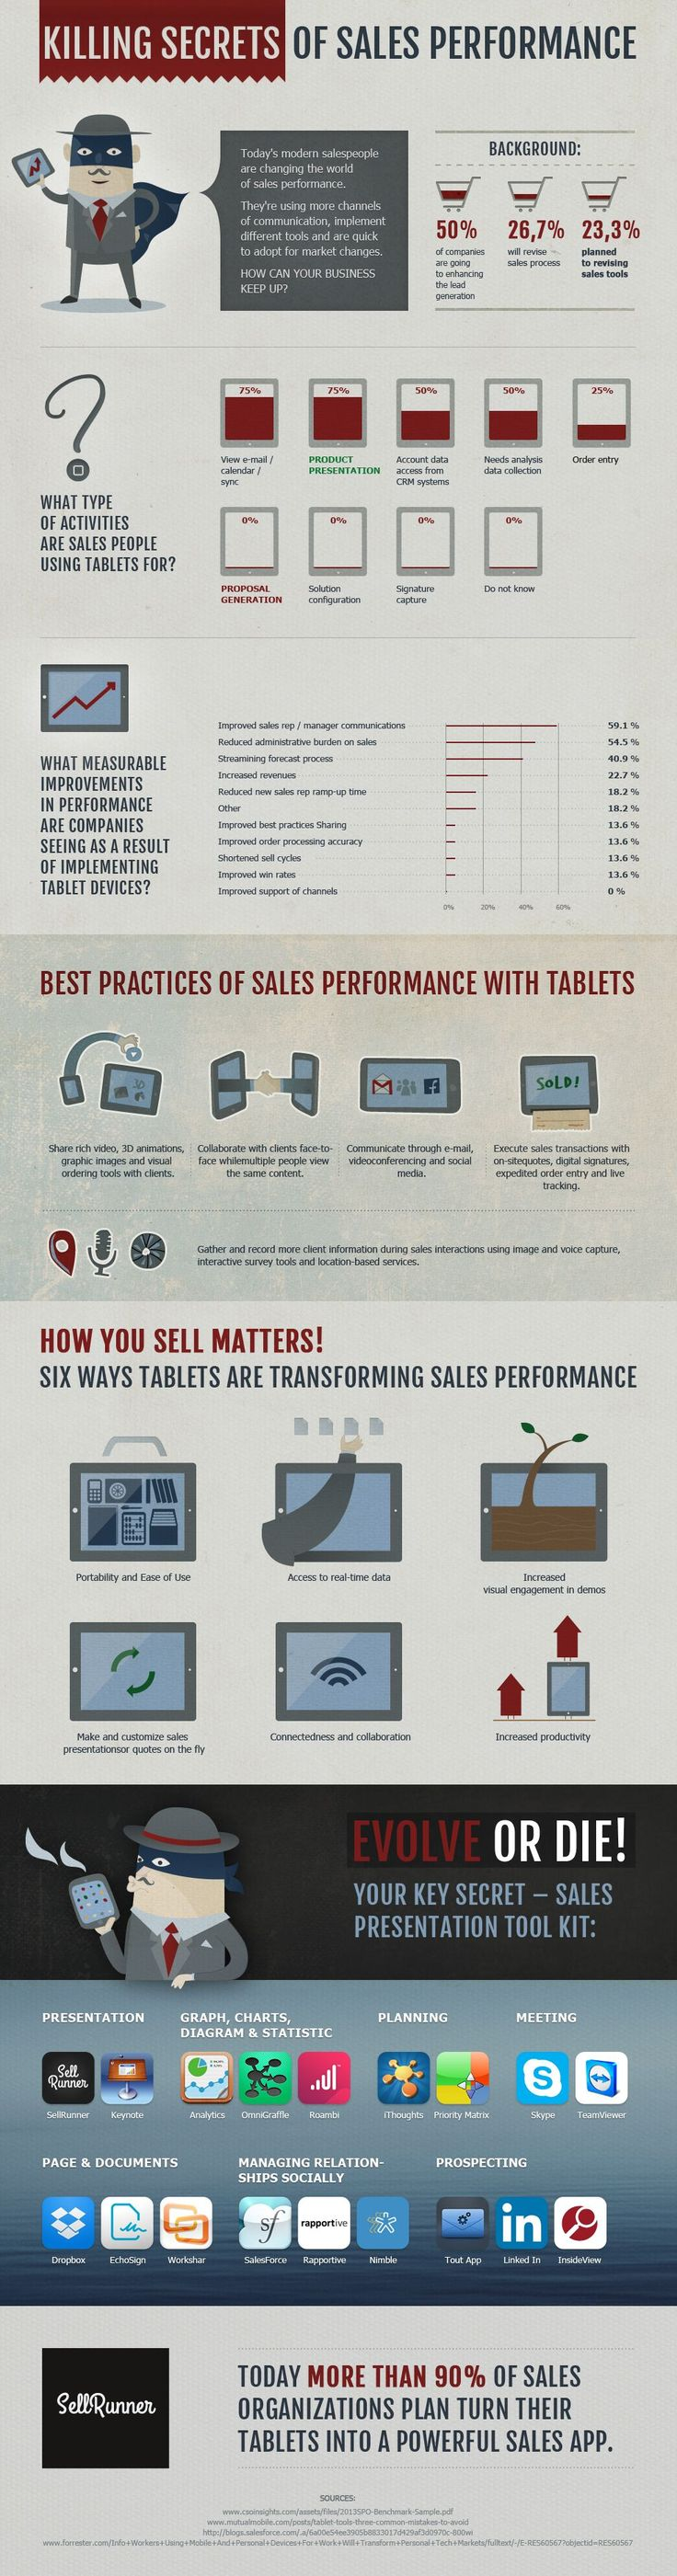 Sale Associate Resume%0A Killing Secrets Of Sales Performance  Infographic  business